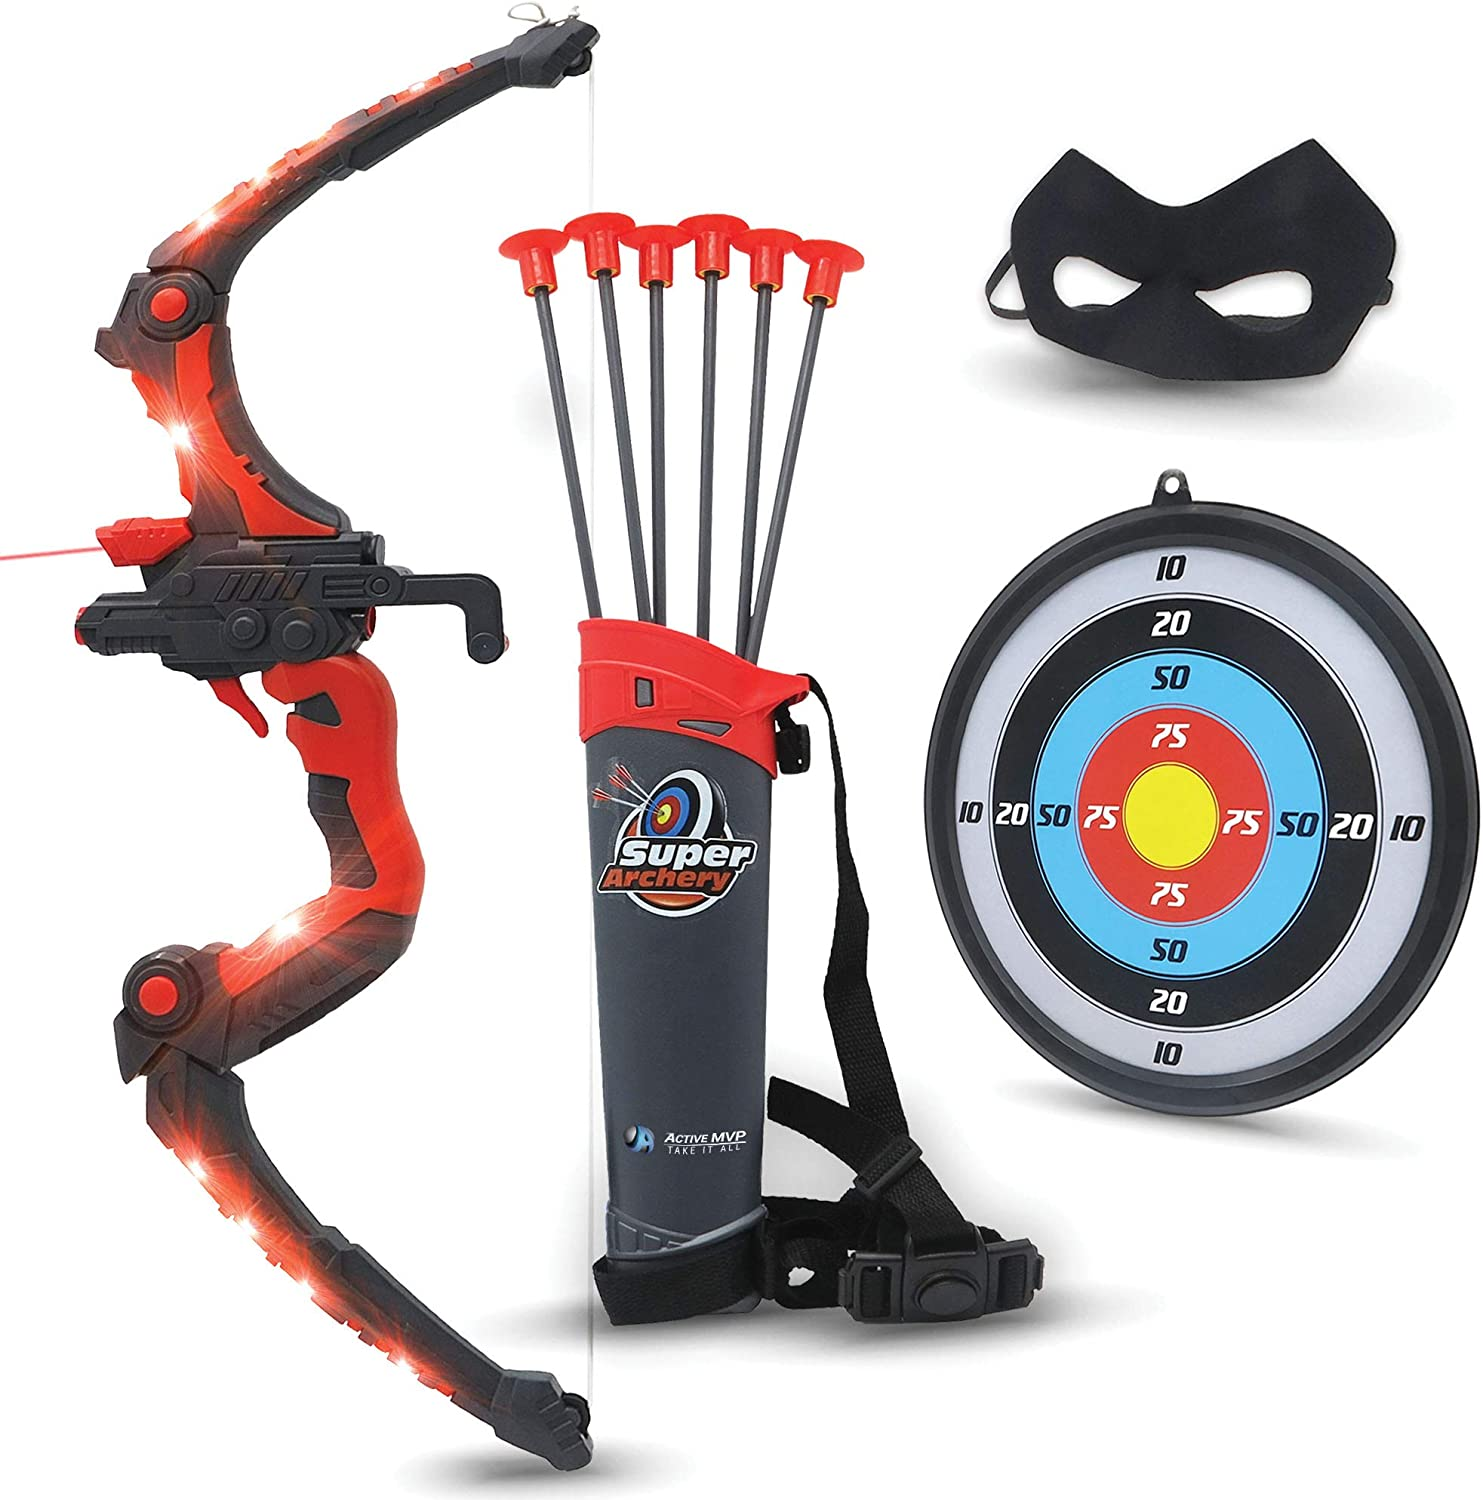 Bow and Arrow for Kids - Red Light Up Kids Archery Set with MASK, 6 Suction Cup Arrows, Target, 3-Belt Quiver - Indoor Outdoor Boys Toys - Gift for Kids Girls Children Age 3 4 5 6 7 8 9 10-12 Year Old